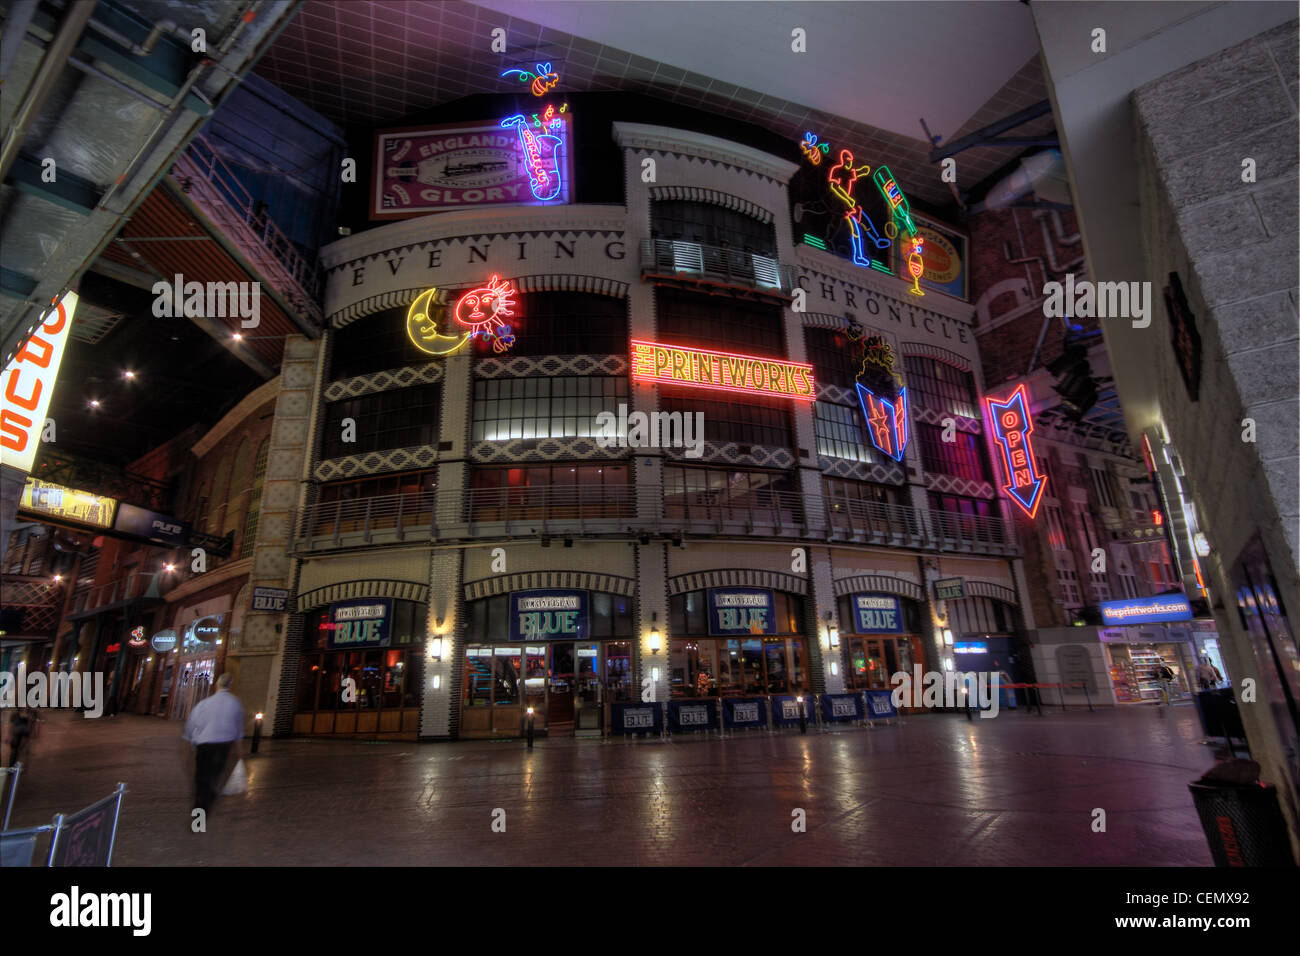 Manchester Printworks Entertainment complex, Interior, England city UK Stock Photo